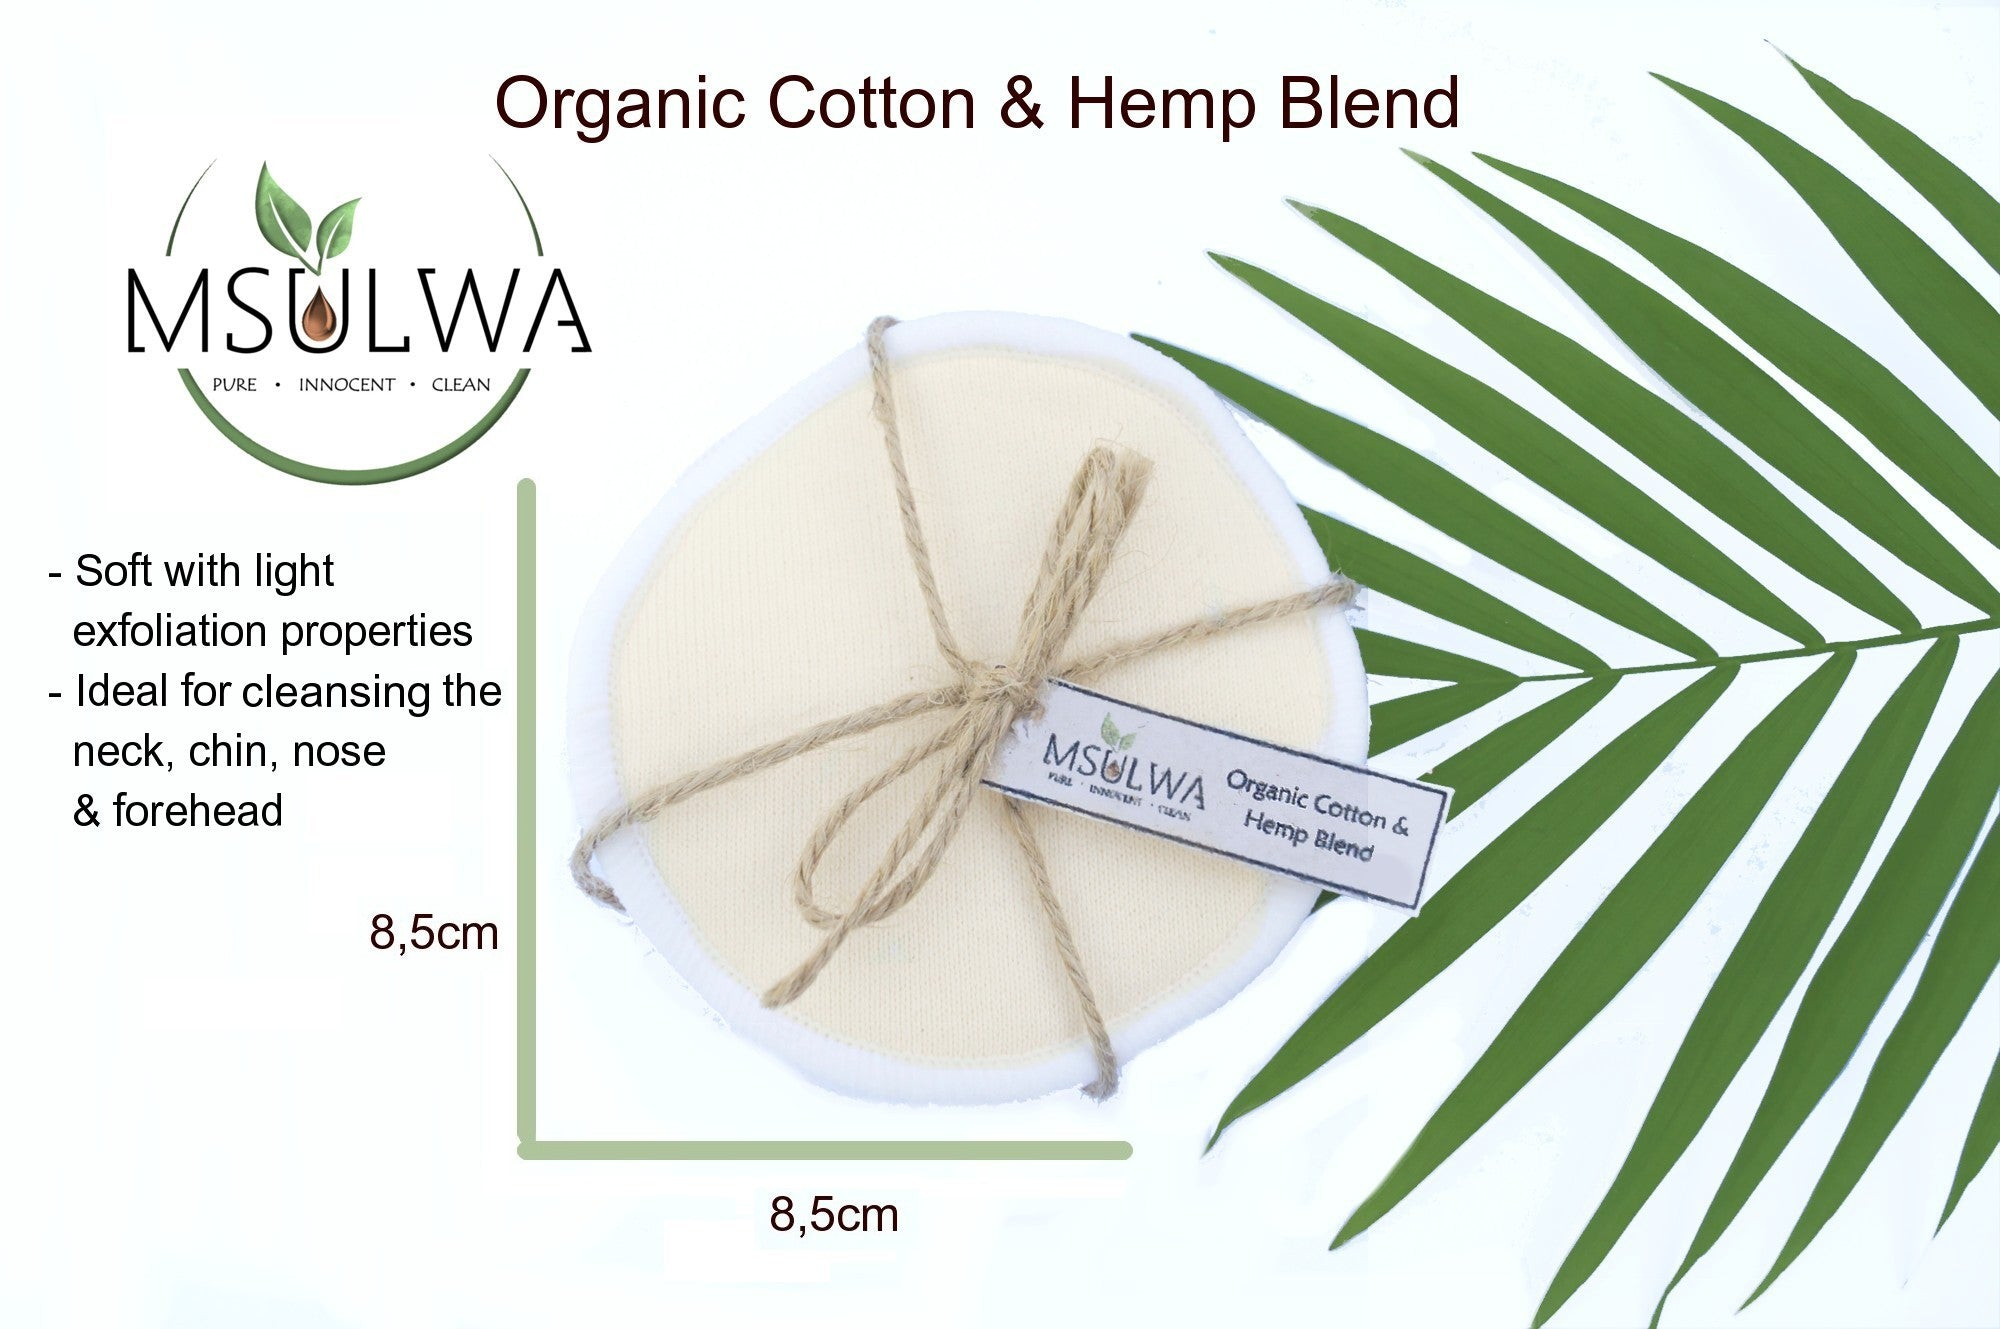 Msulwa Life, eco-friendly, reusable facial rounds, organic cotton pads, sustainable, zero waste, plastic free